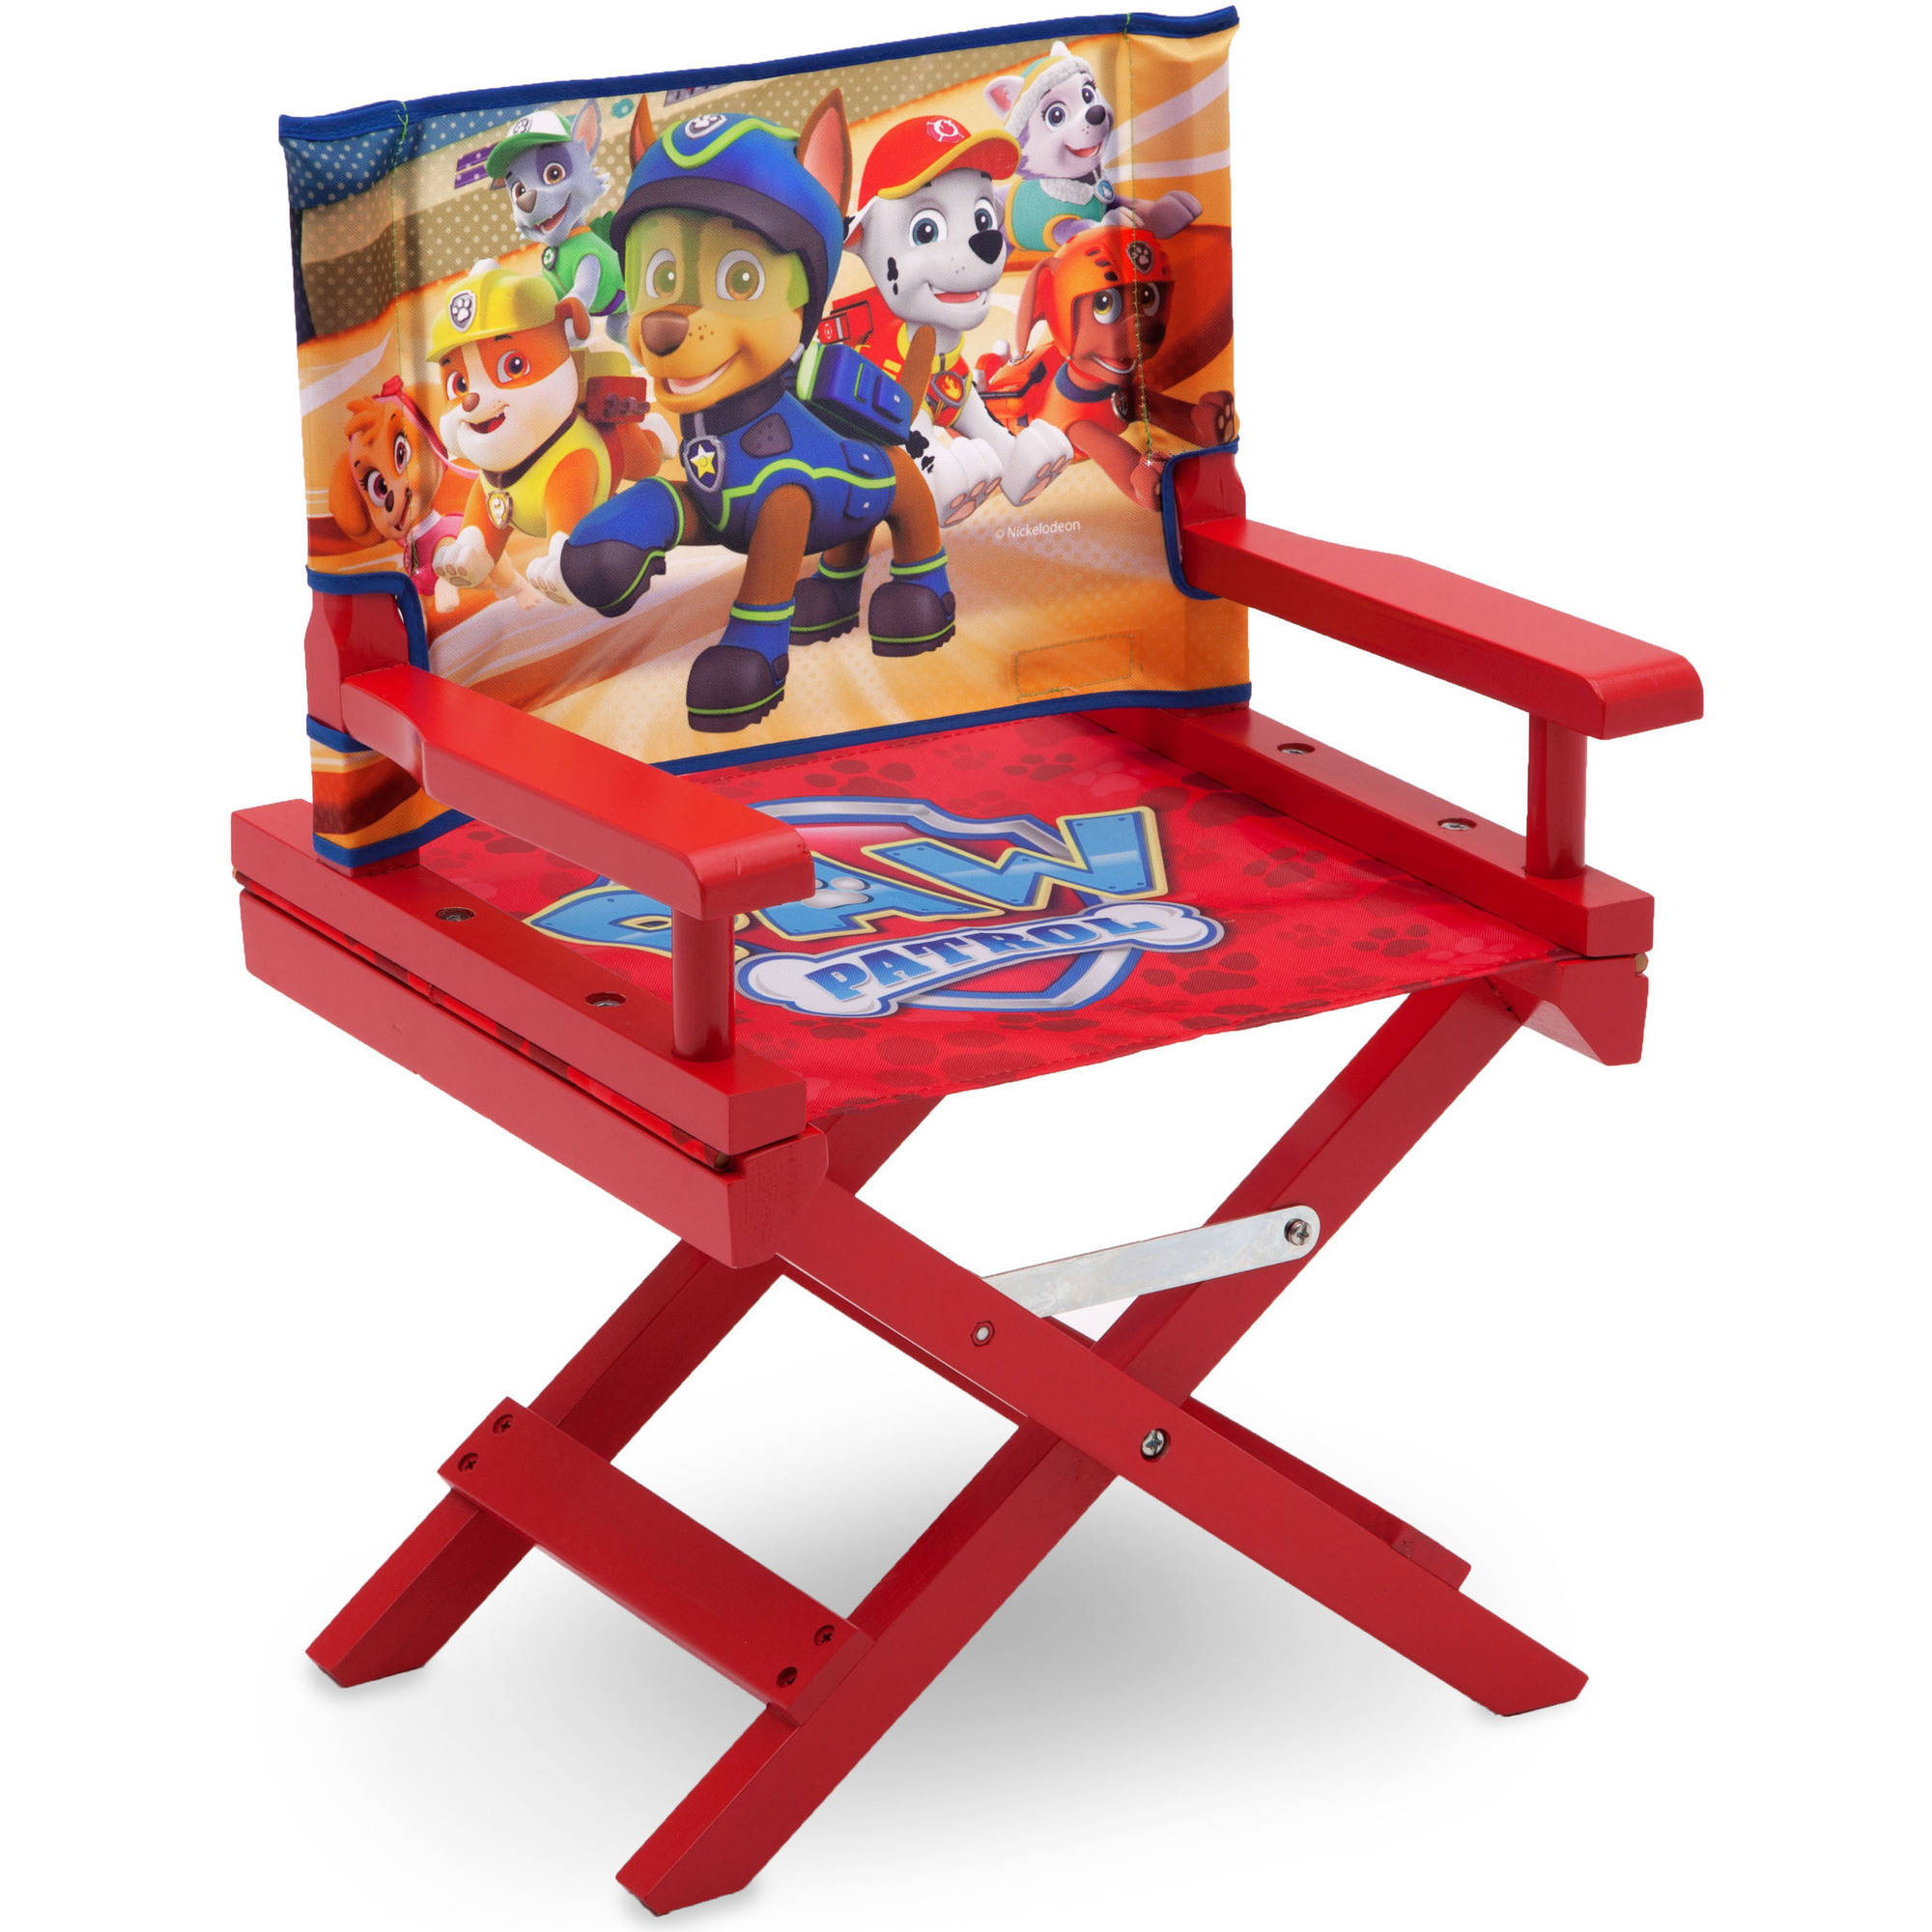 Nick Jr. PAW Patrol Director's Chair